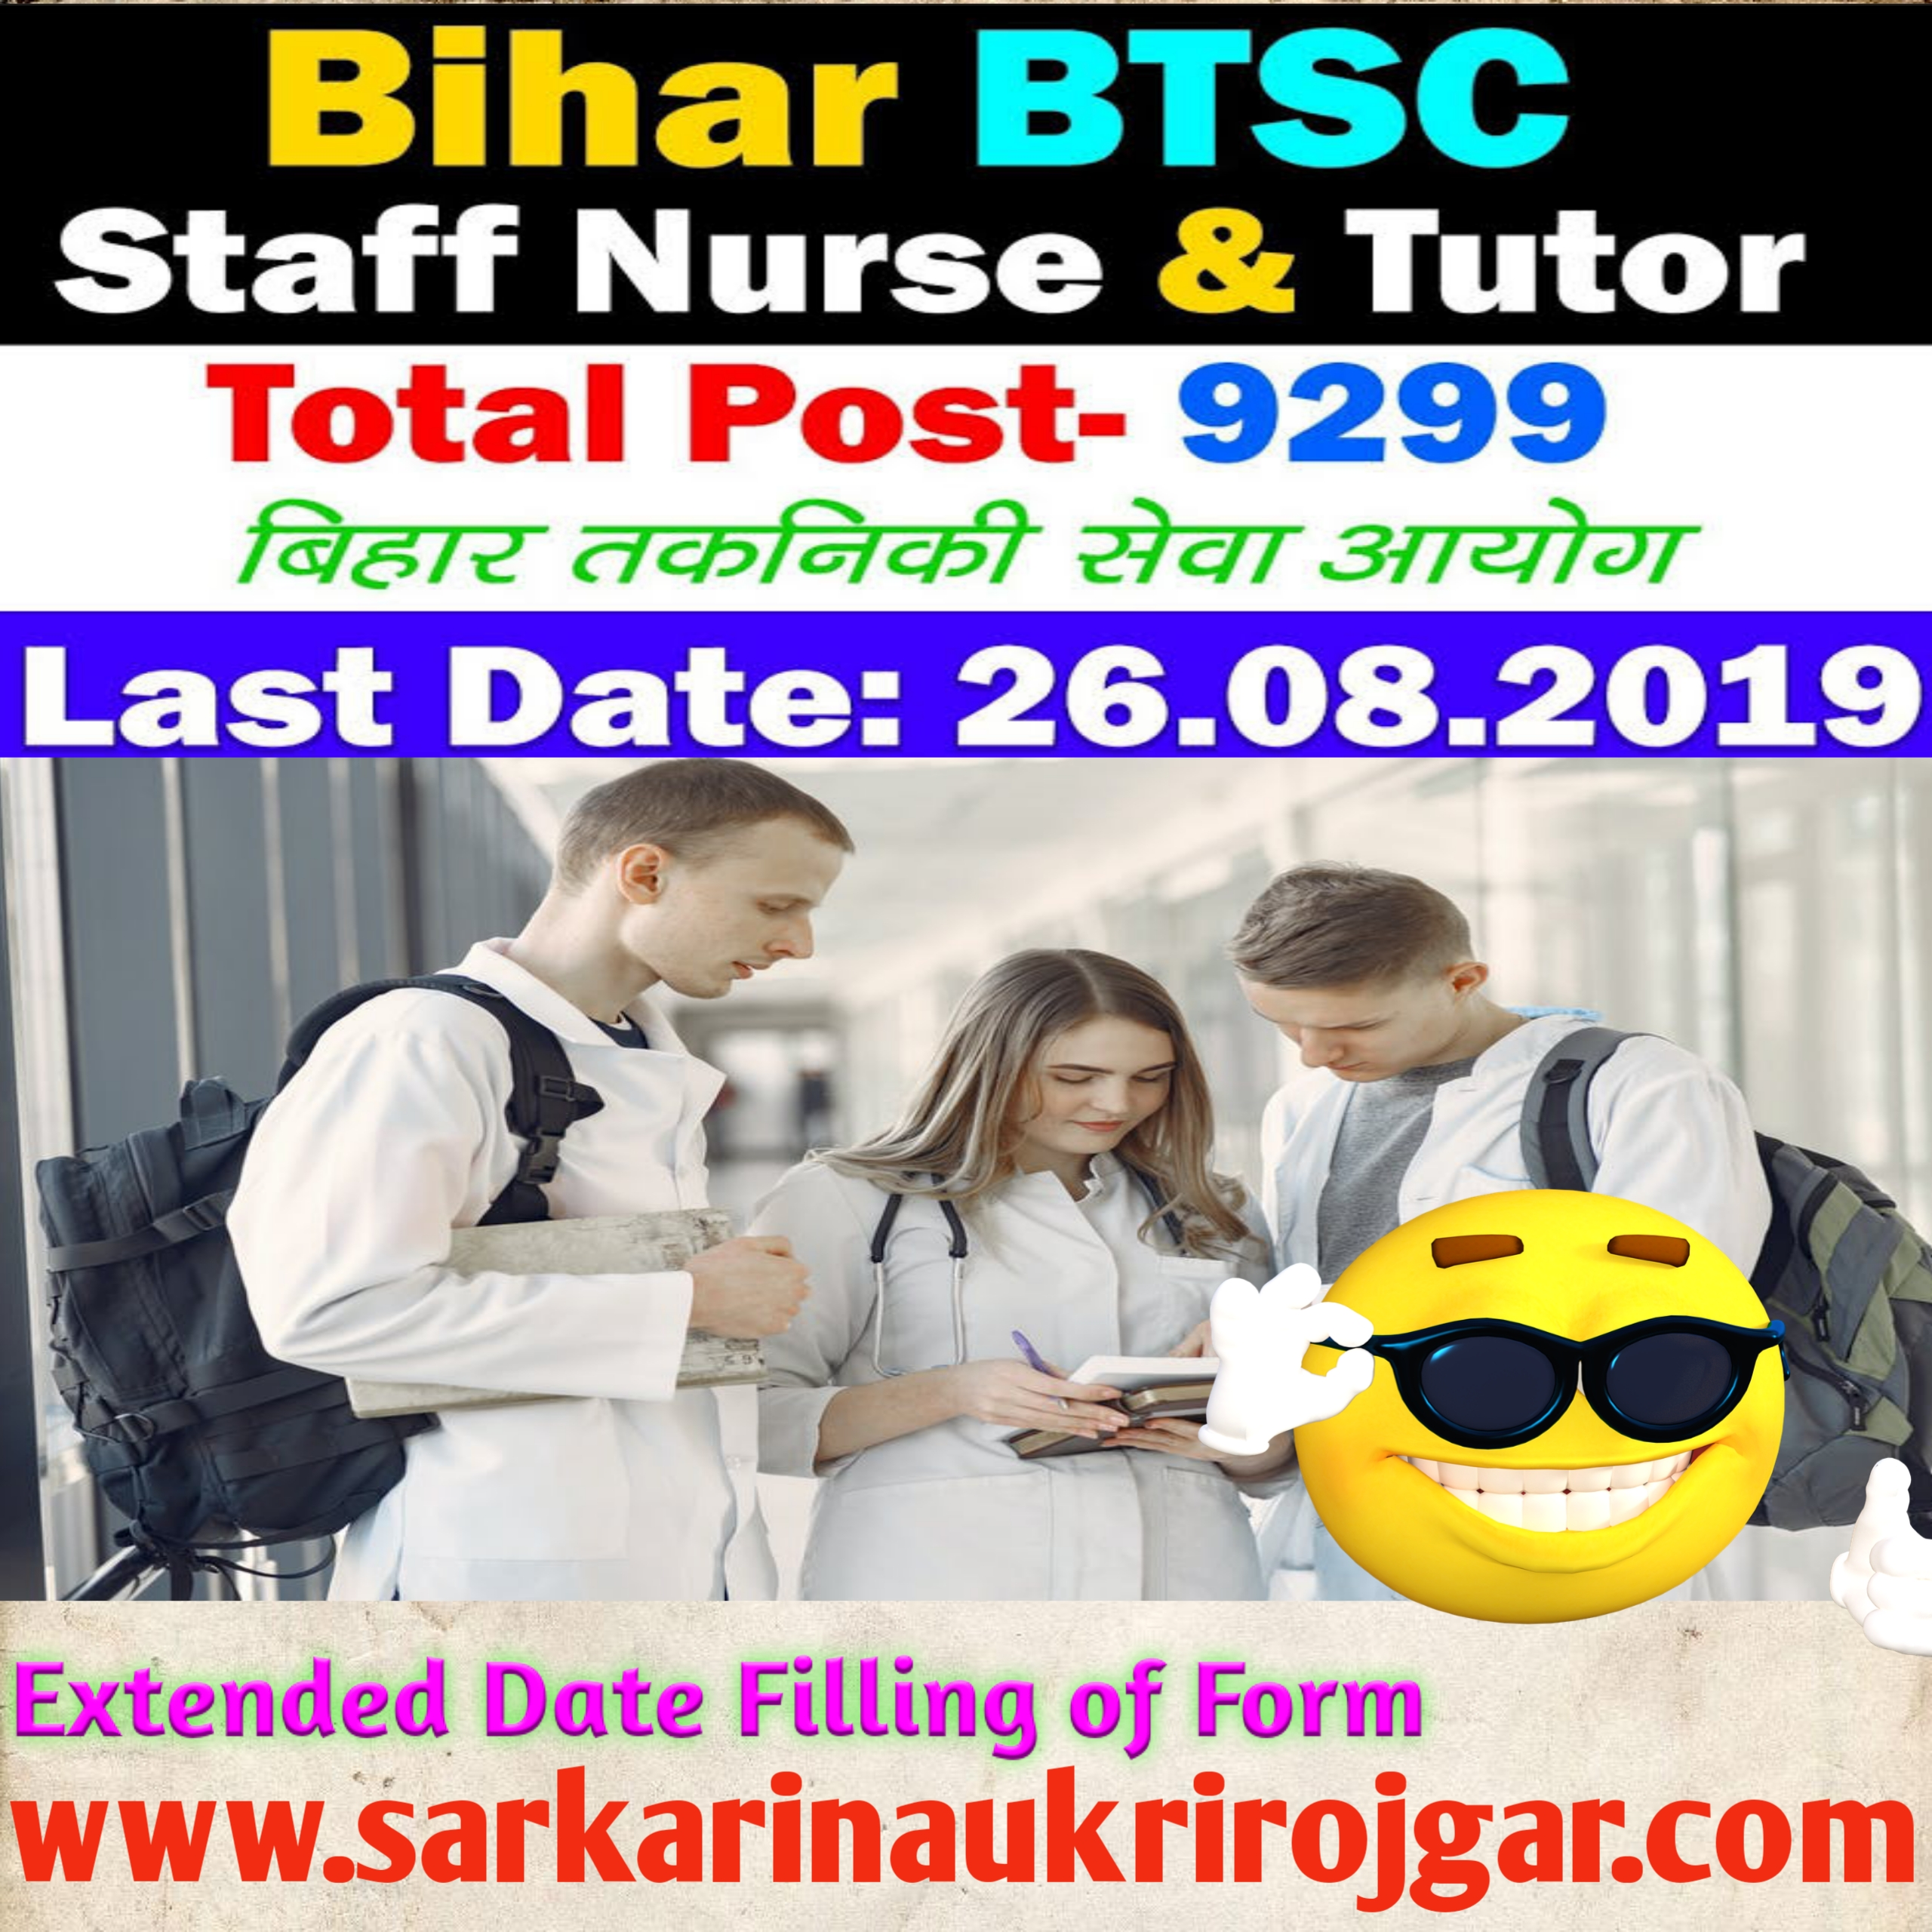 Bihar SHSB ANM Staff Nurse Recruitment 2020